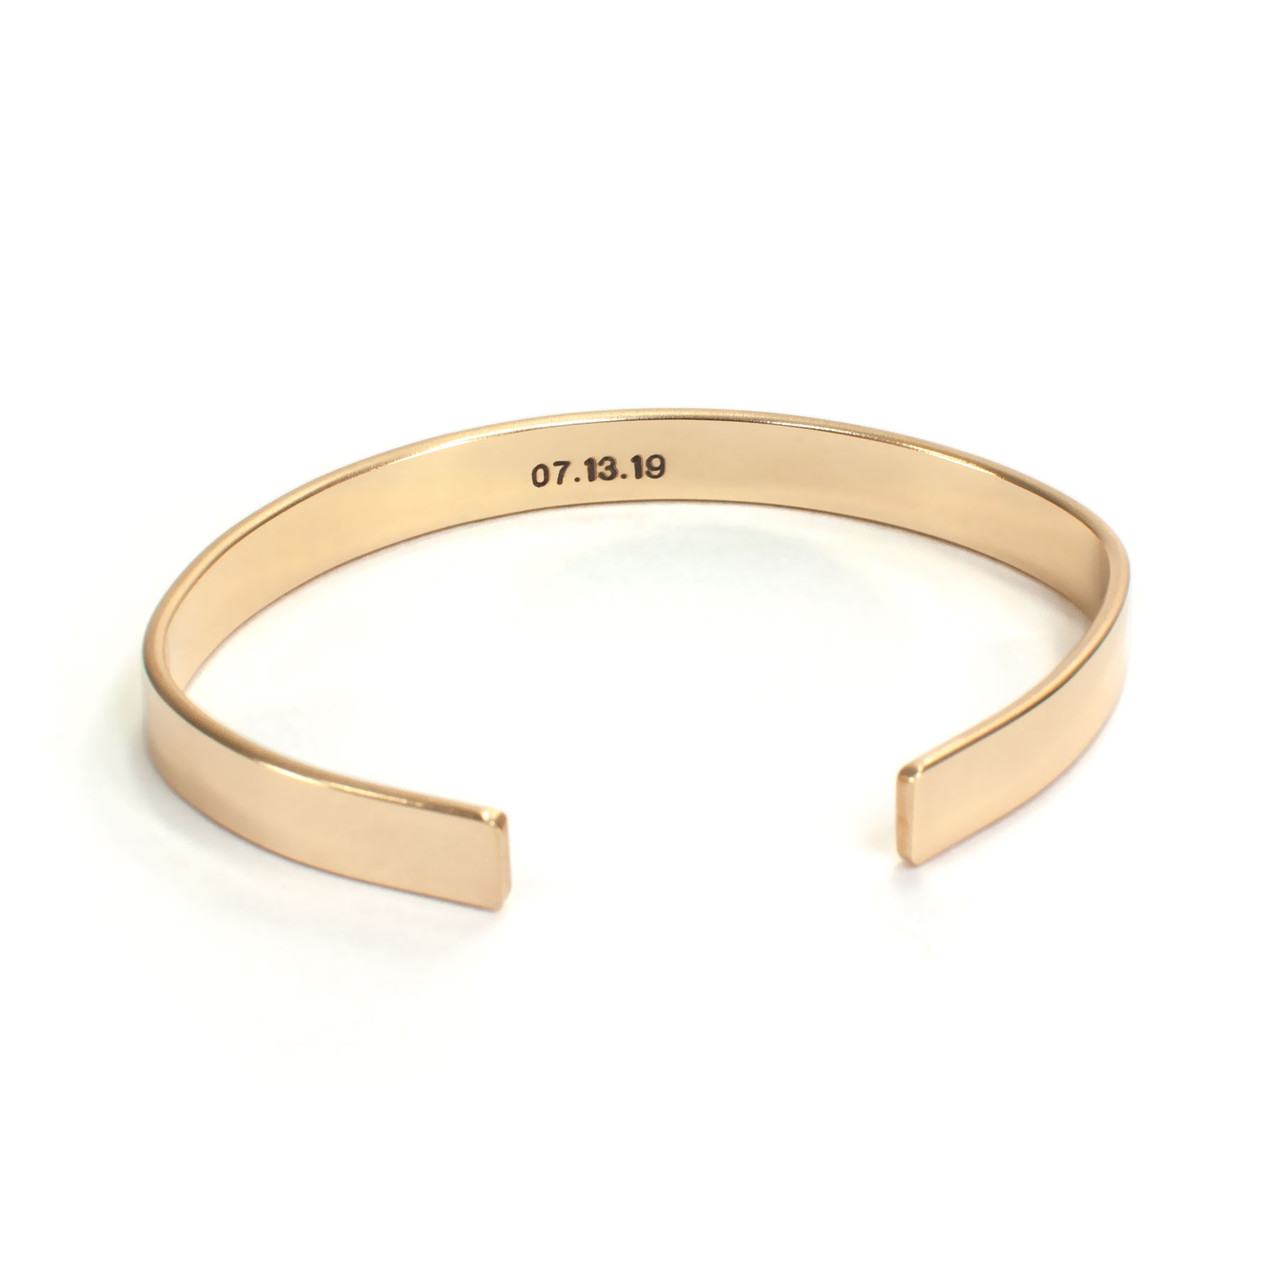 Gold handwriting cuff bracelet , shown from the back